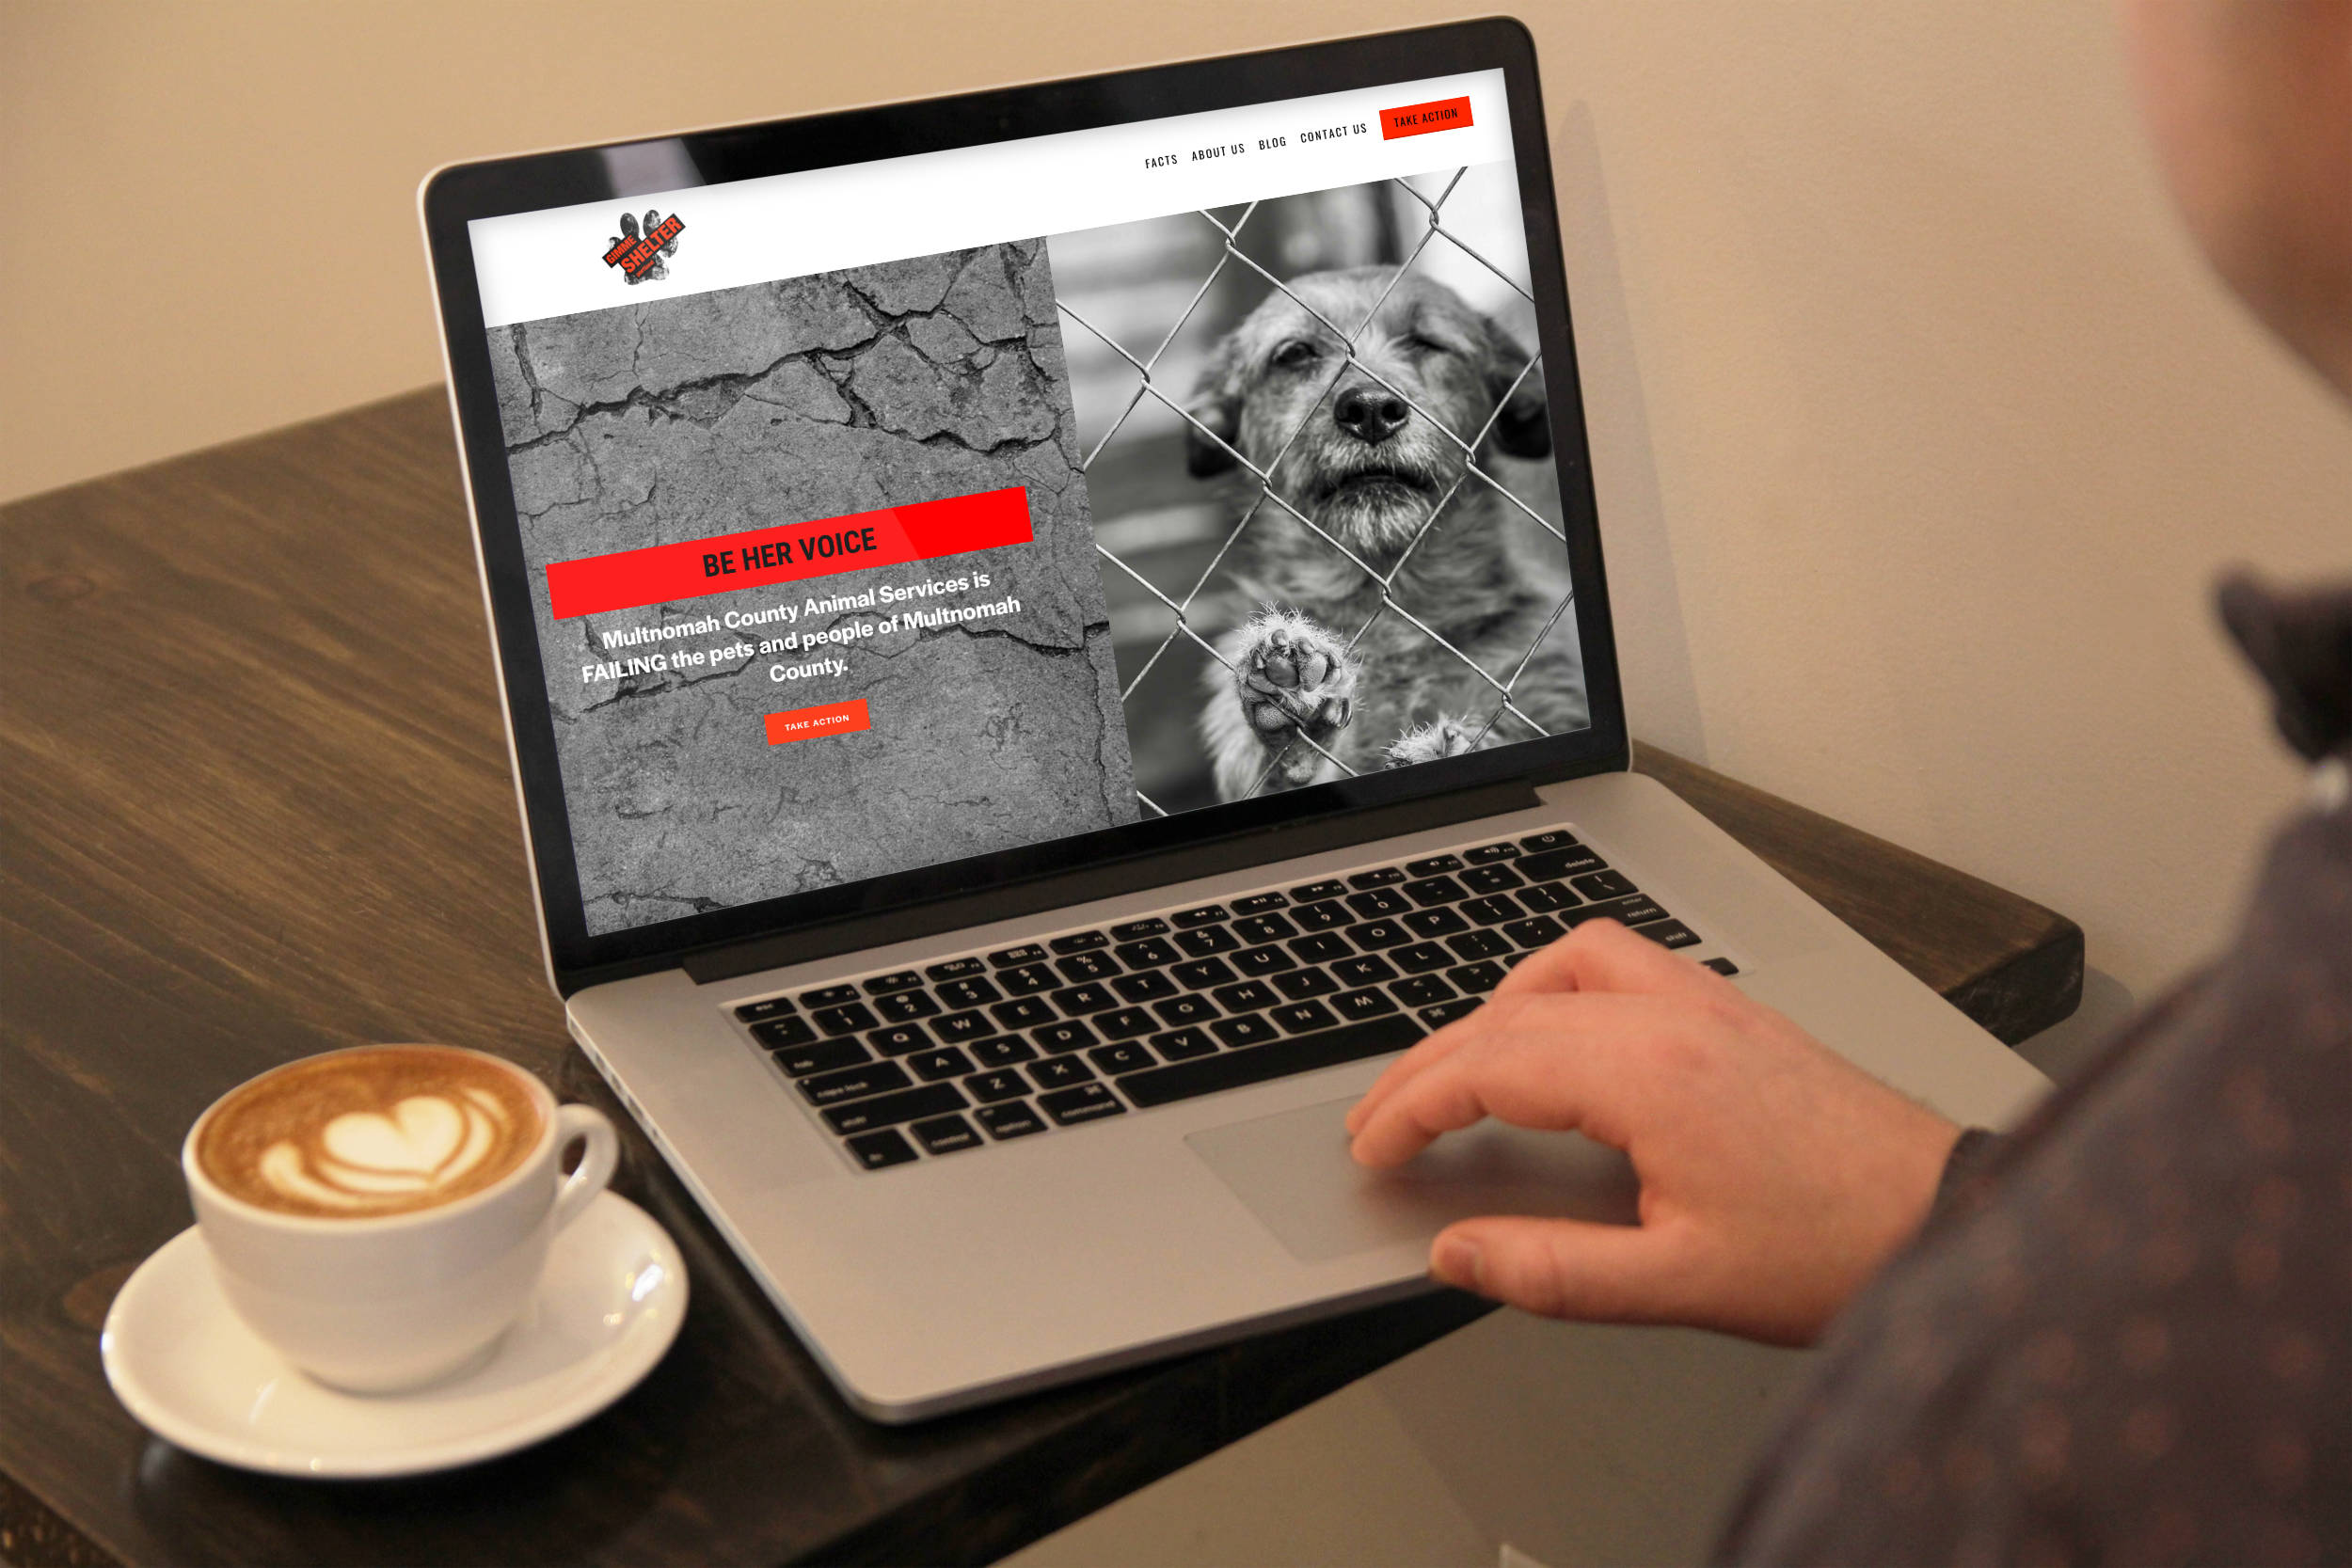 Gimme Shelter - This Design in a Day™ project is a nimble website for a campaign to improve conditions for shelter animals. The homepage tells the story, while the other pages funnel visits to take action. The blog is an ongoing educational and resource project ensuring the site is a living entity.